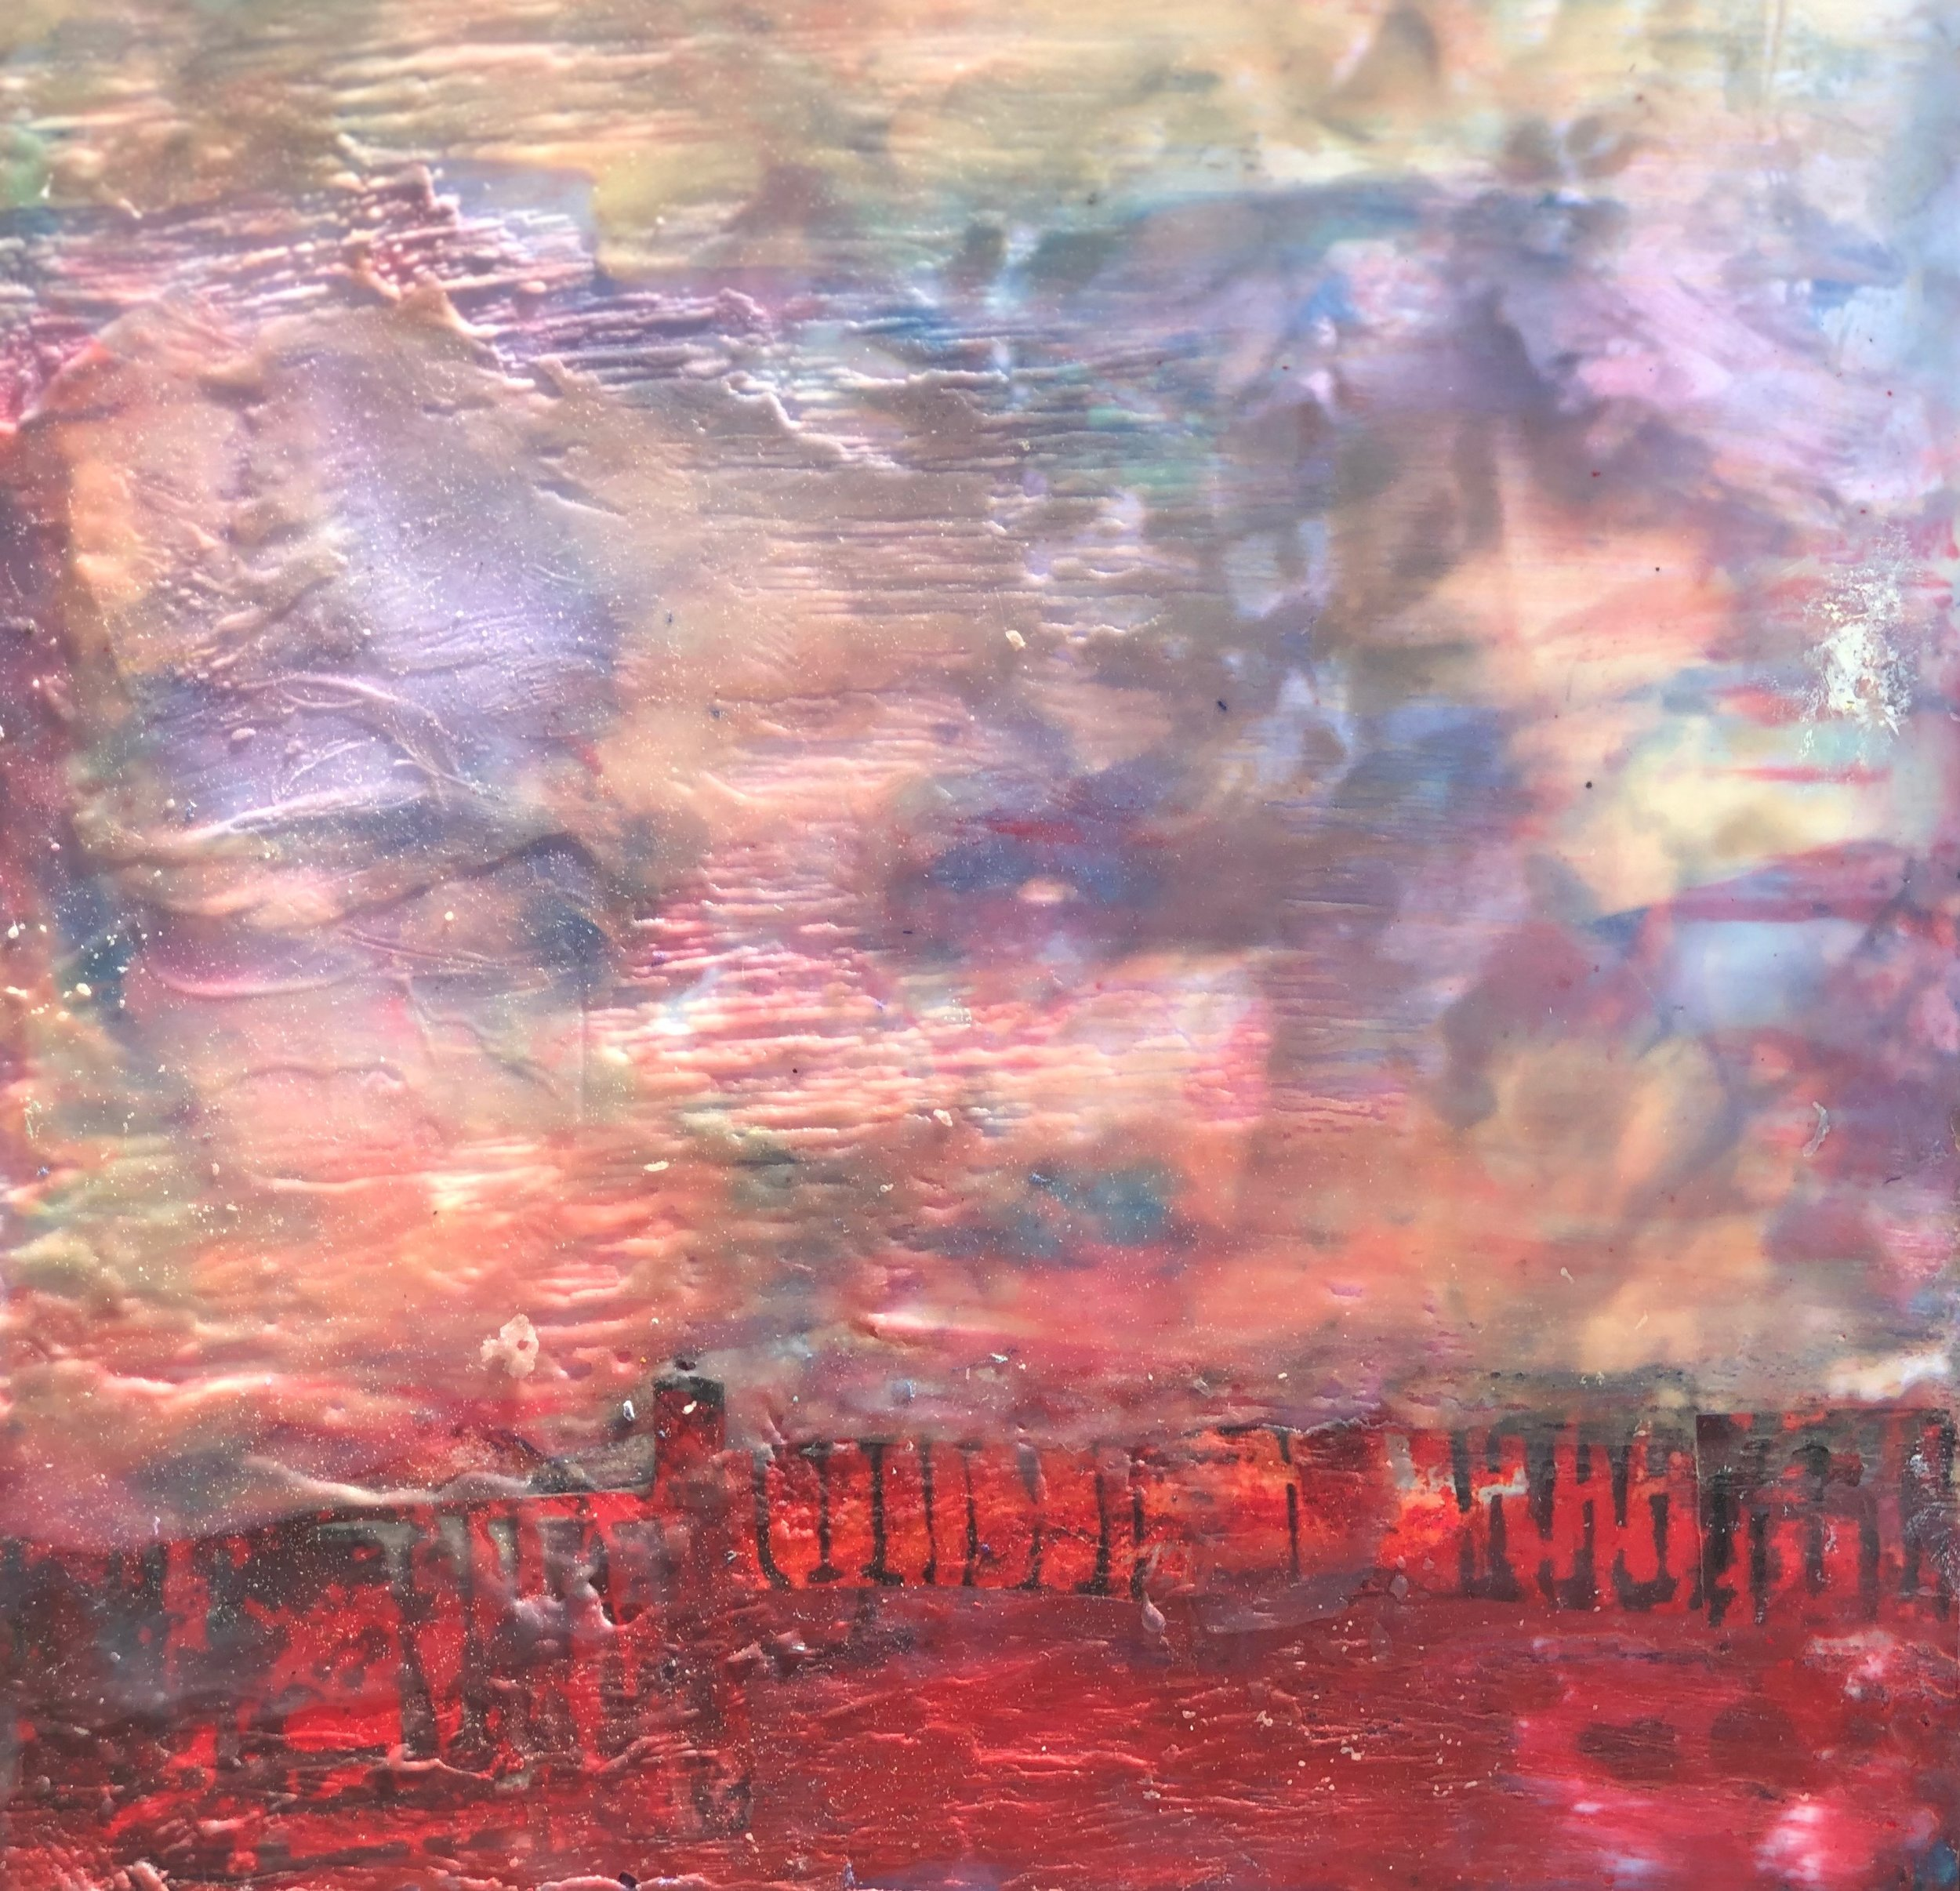 Sunset_12x12_Encaustic.JPG